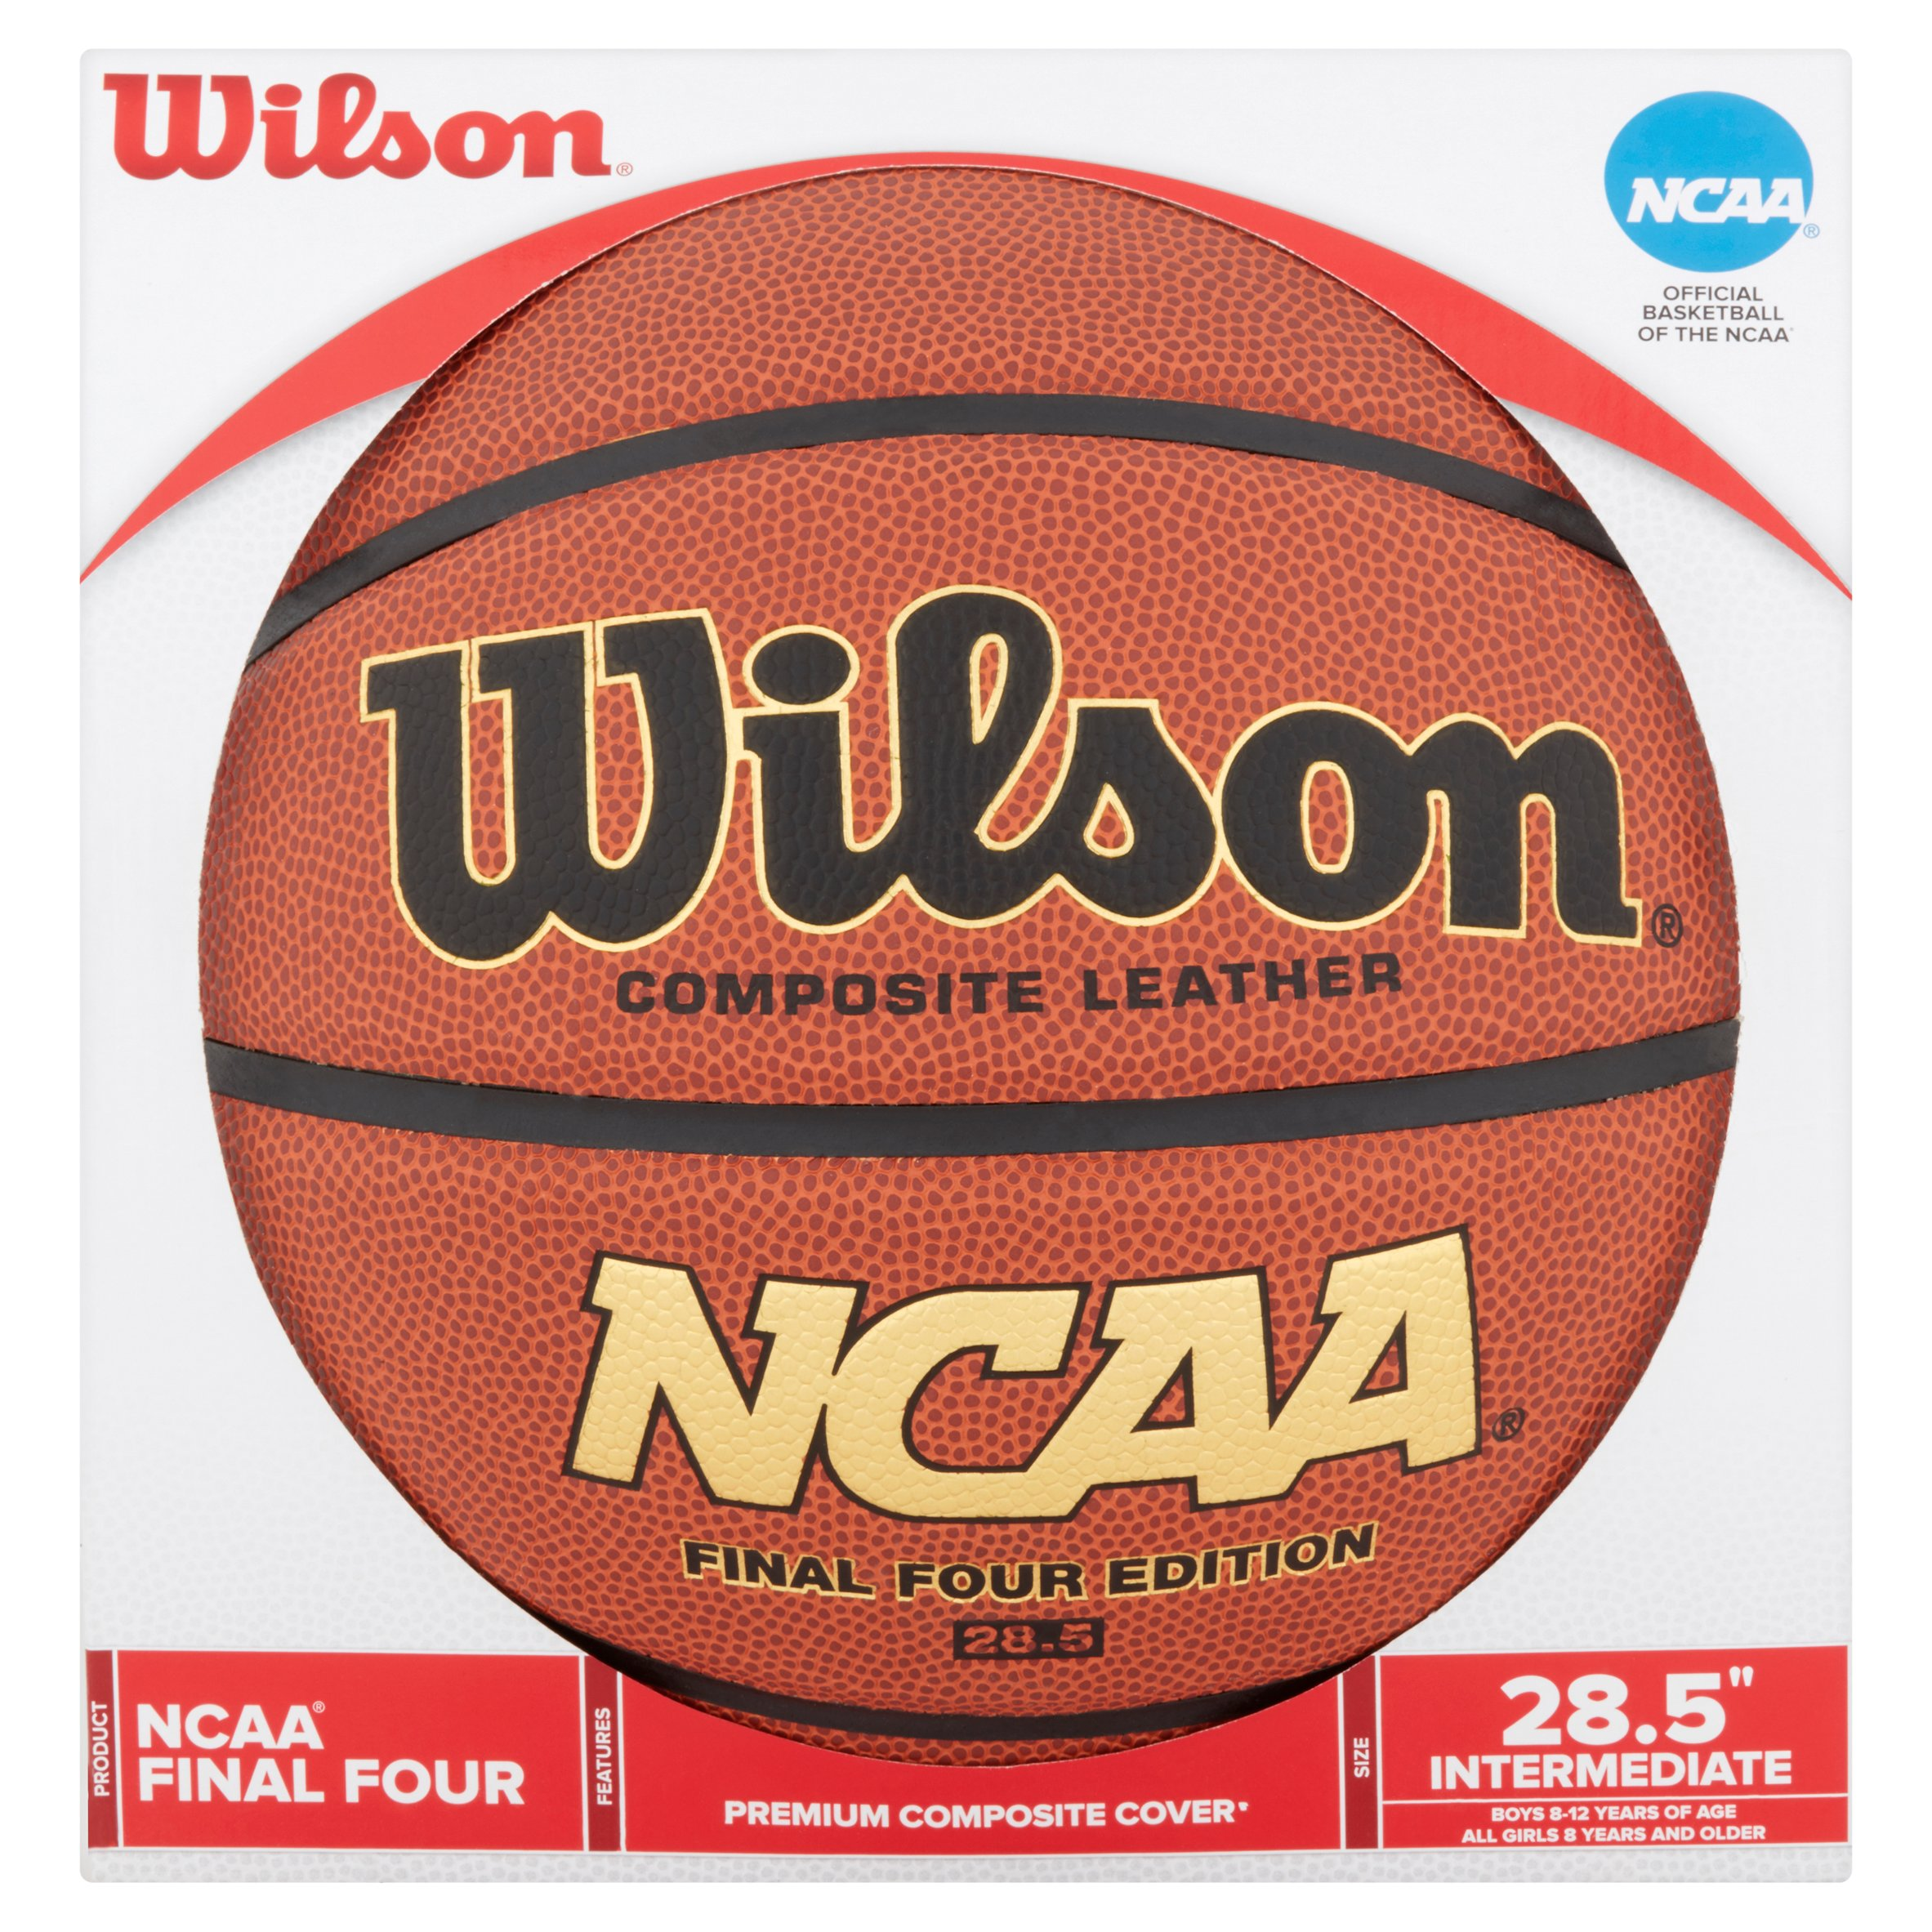 "Wilson Final Four Edition Premium Composite Cover 28.5"" Intermediate Basketball"